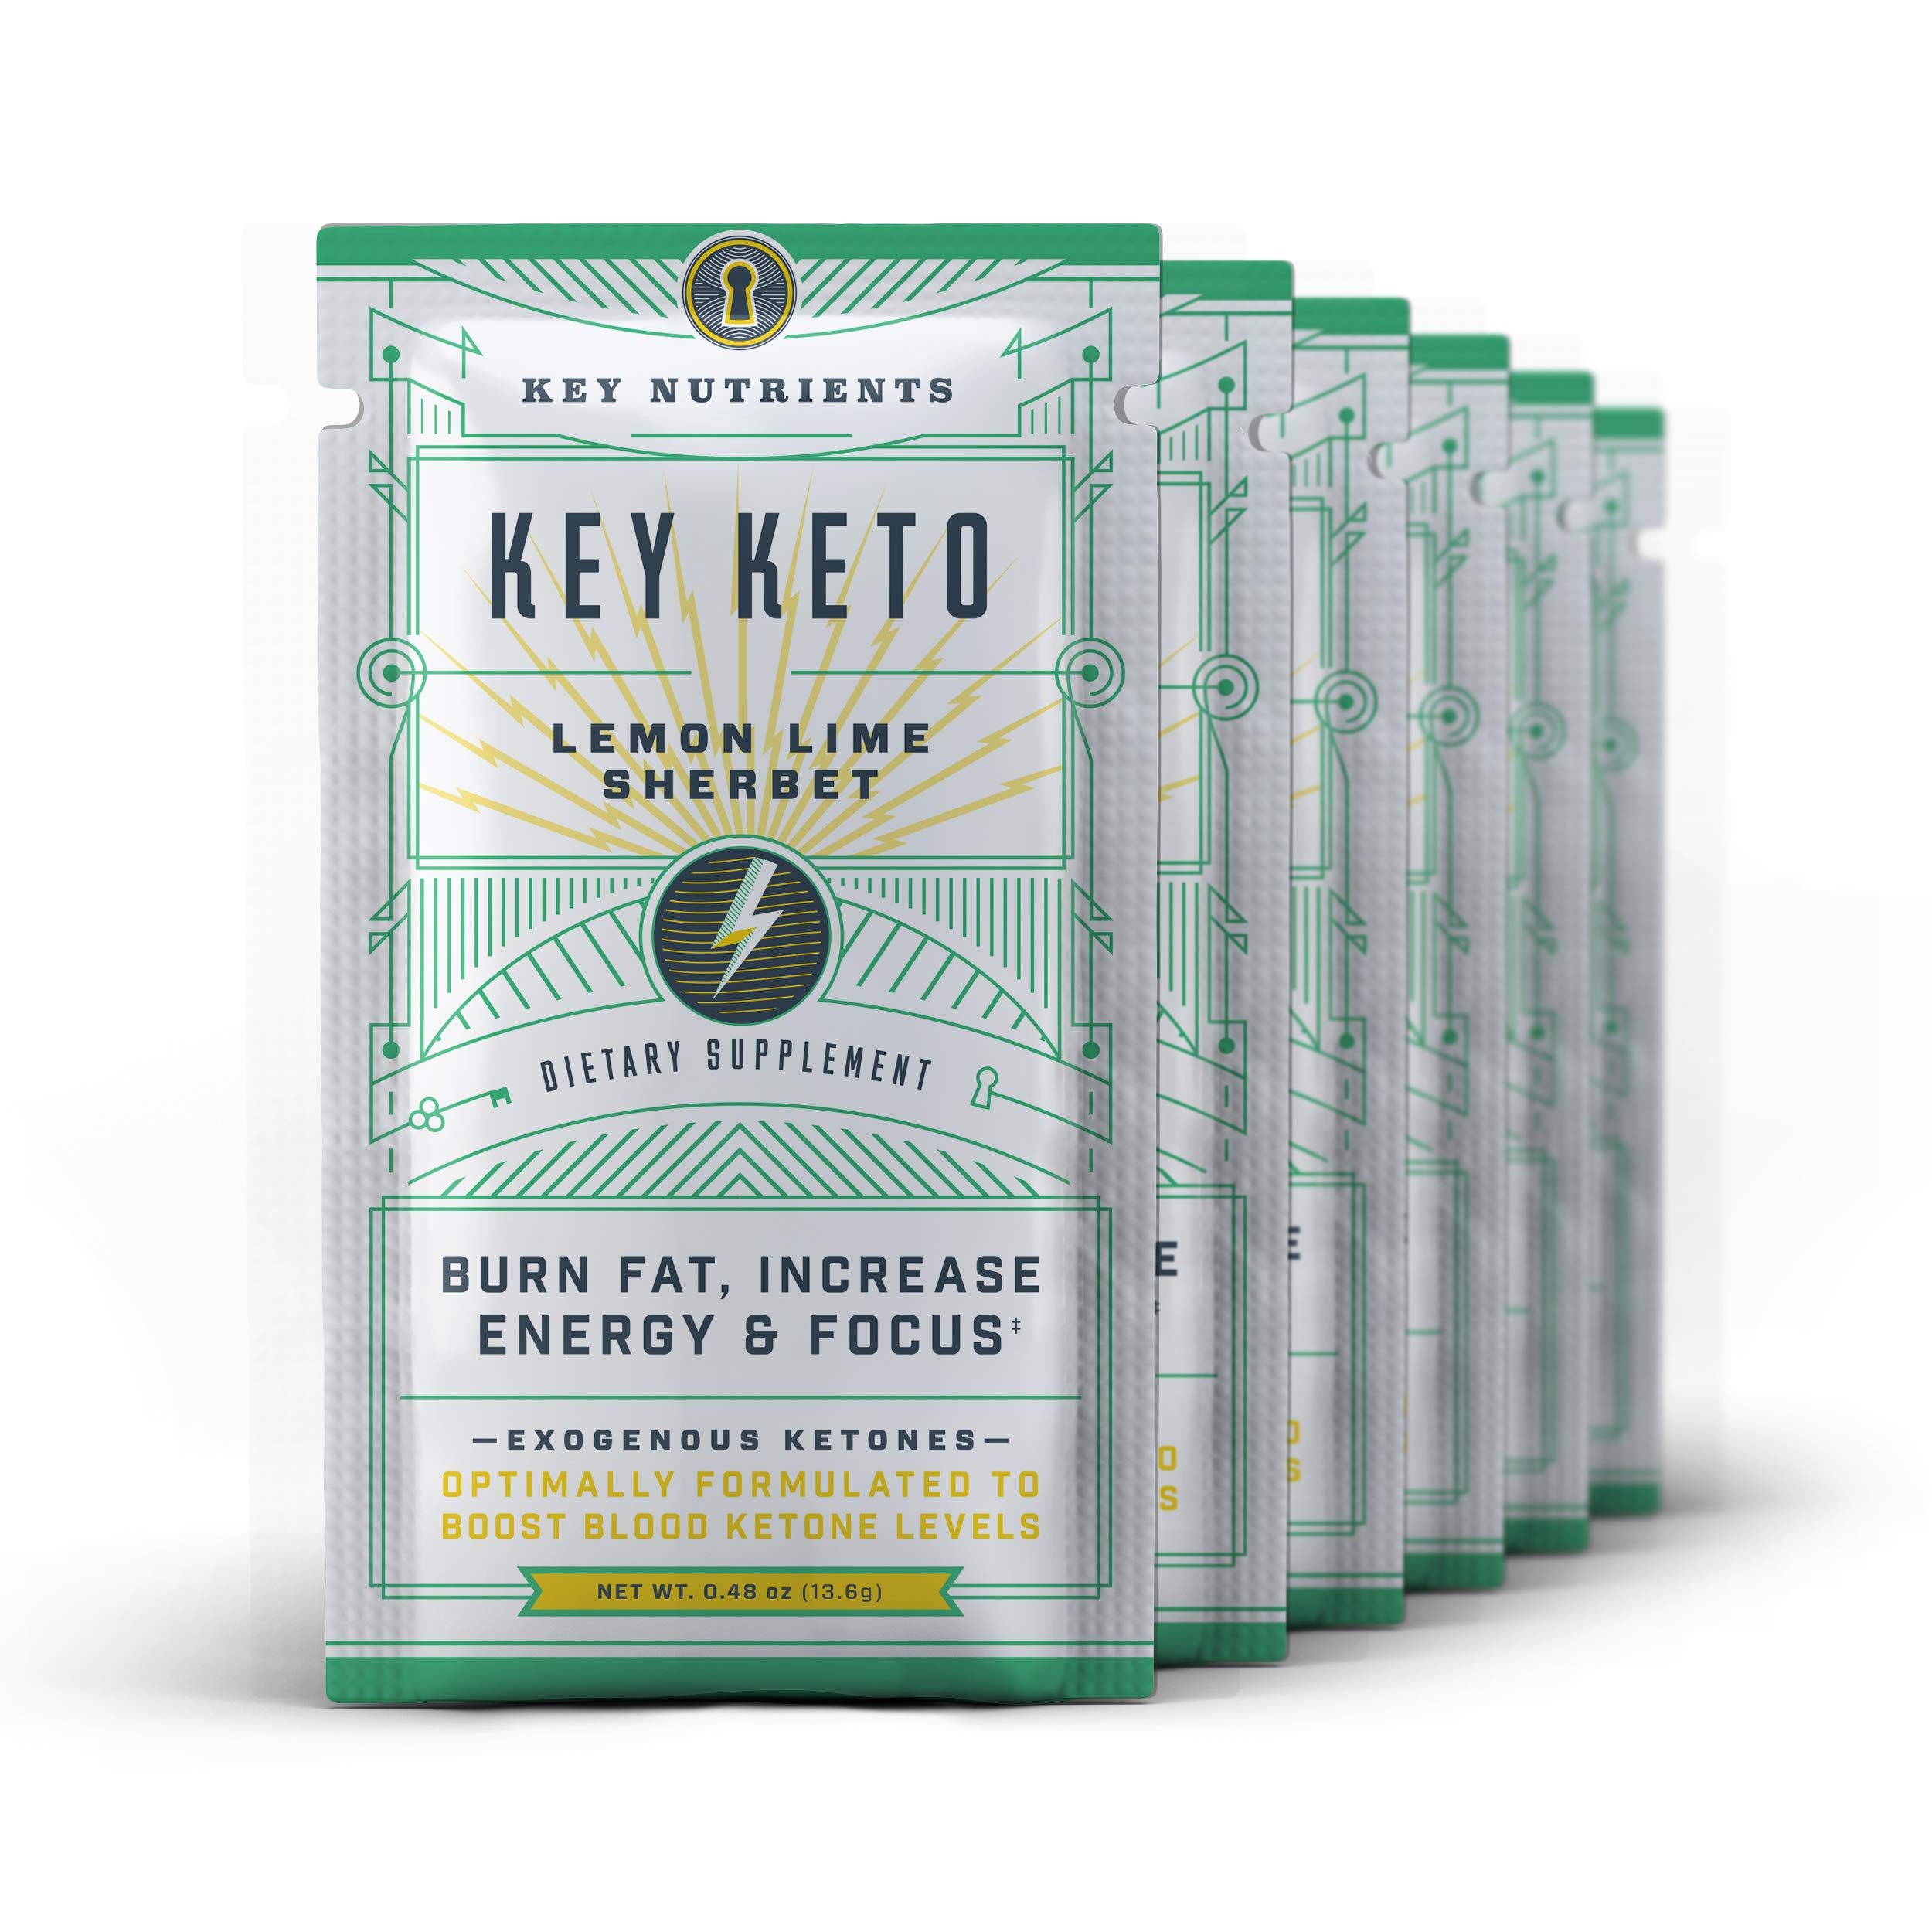 Exogenous Ketone Supplement, Key Keto: Patented BHB Salts (Beta-Hydroxybutyrate) - Formulated for Ketosis, to Burn Fat, Increase Energy and Focus, Supports a Keto Diet. 6 Keto Packets (Lemon Lime)